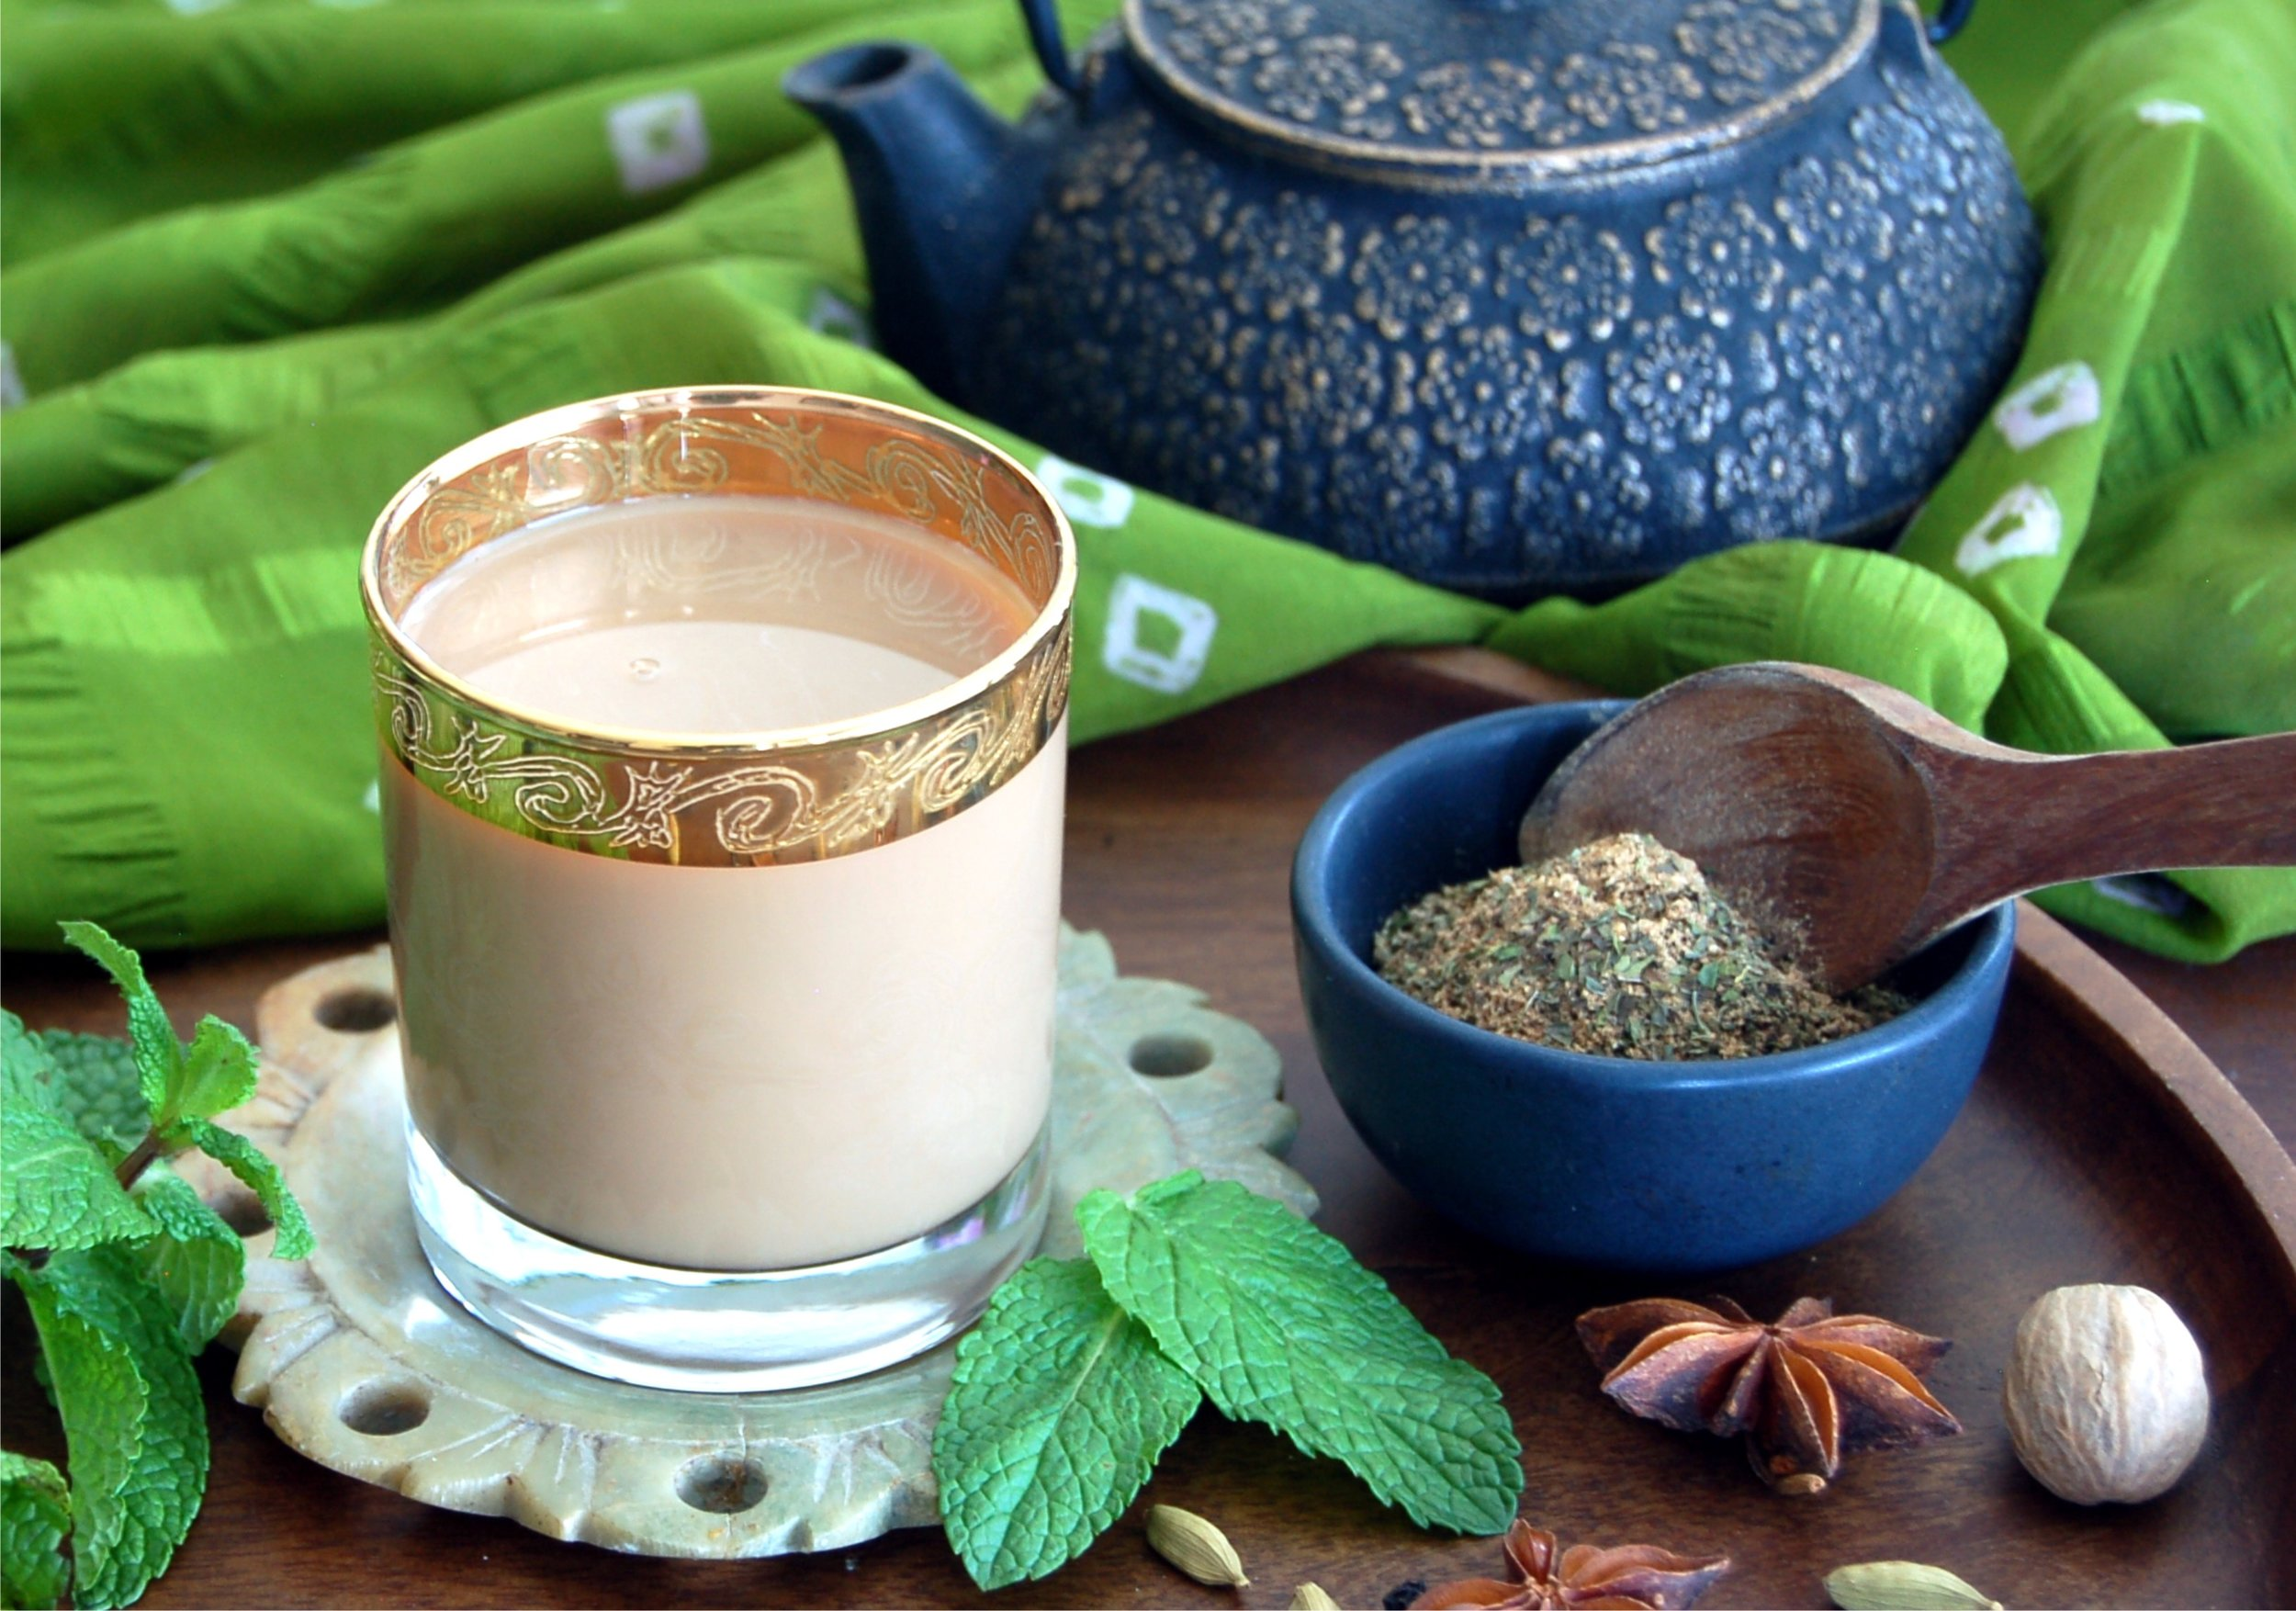 Authentic Minted Masala Chai